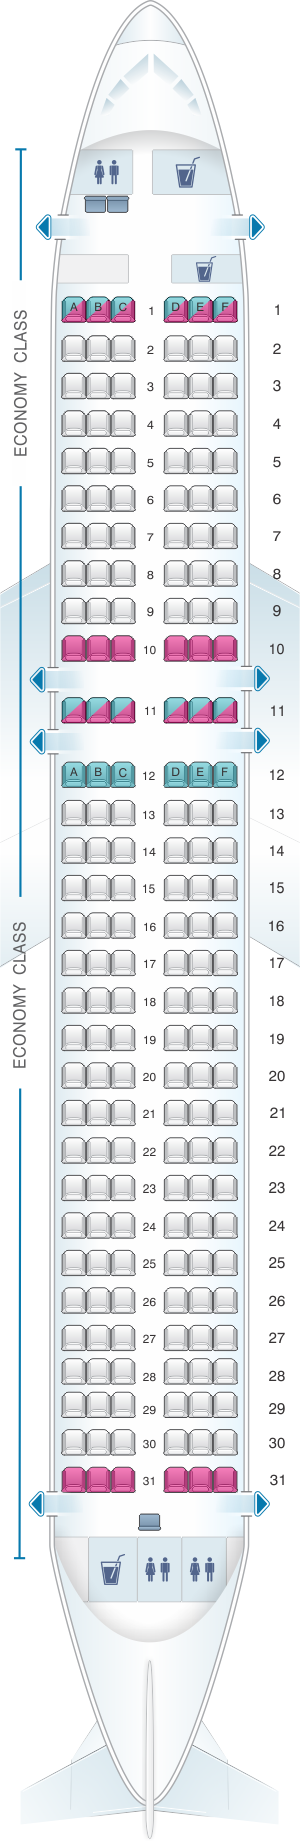 Seat map for IndiGo Airline Airbus A320 Neo